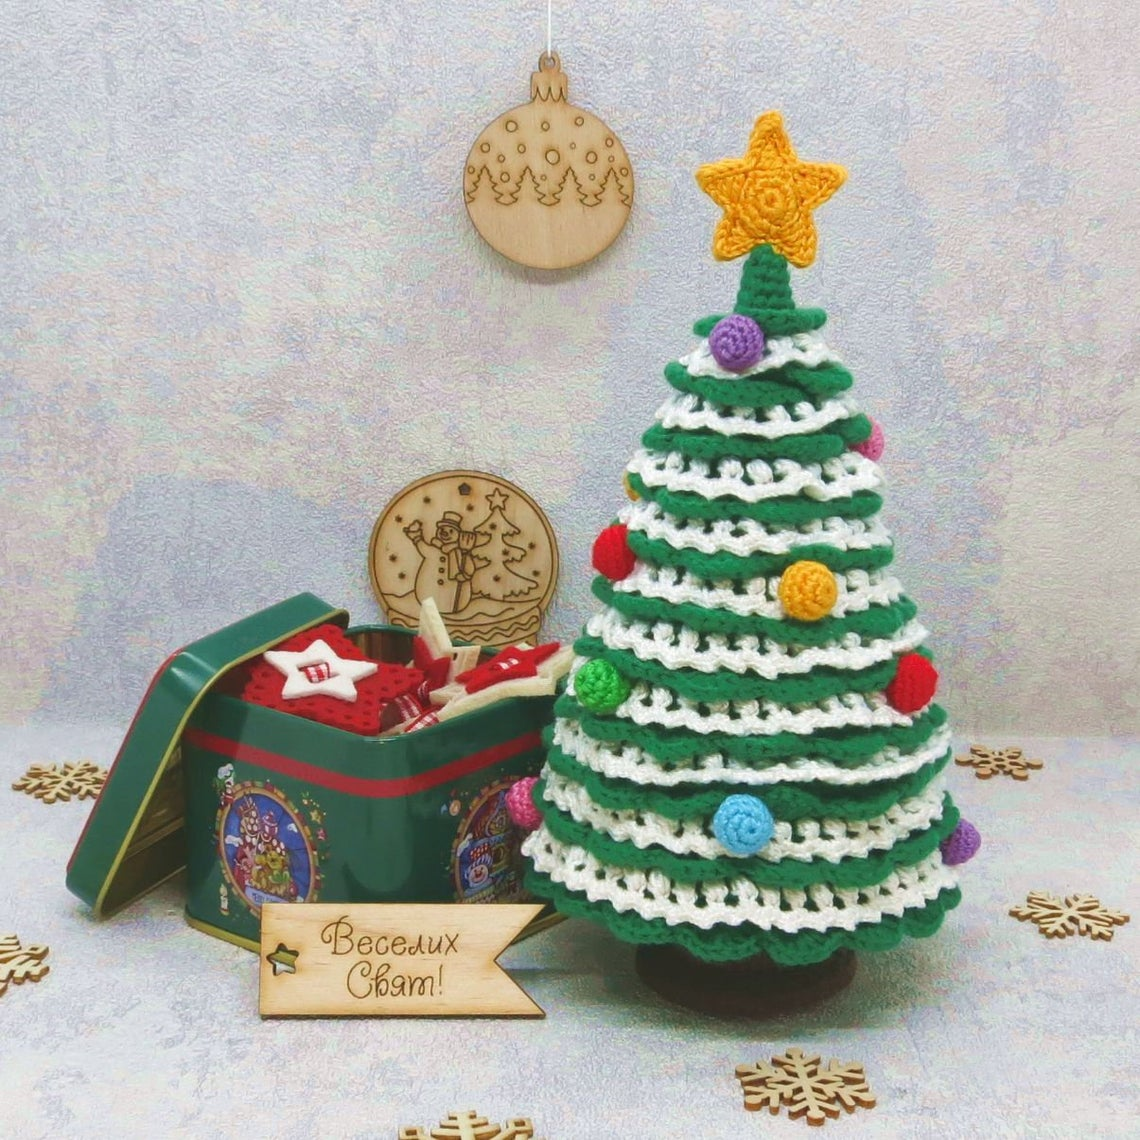 Crochet a Vintage Style Christmas Tree ... Remember Those Ceramic Ones From The 70s?